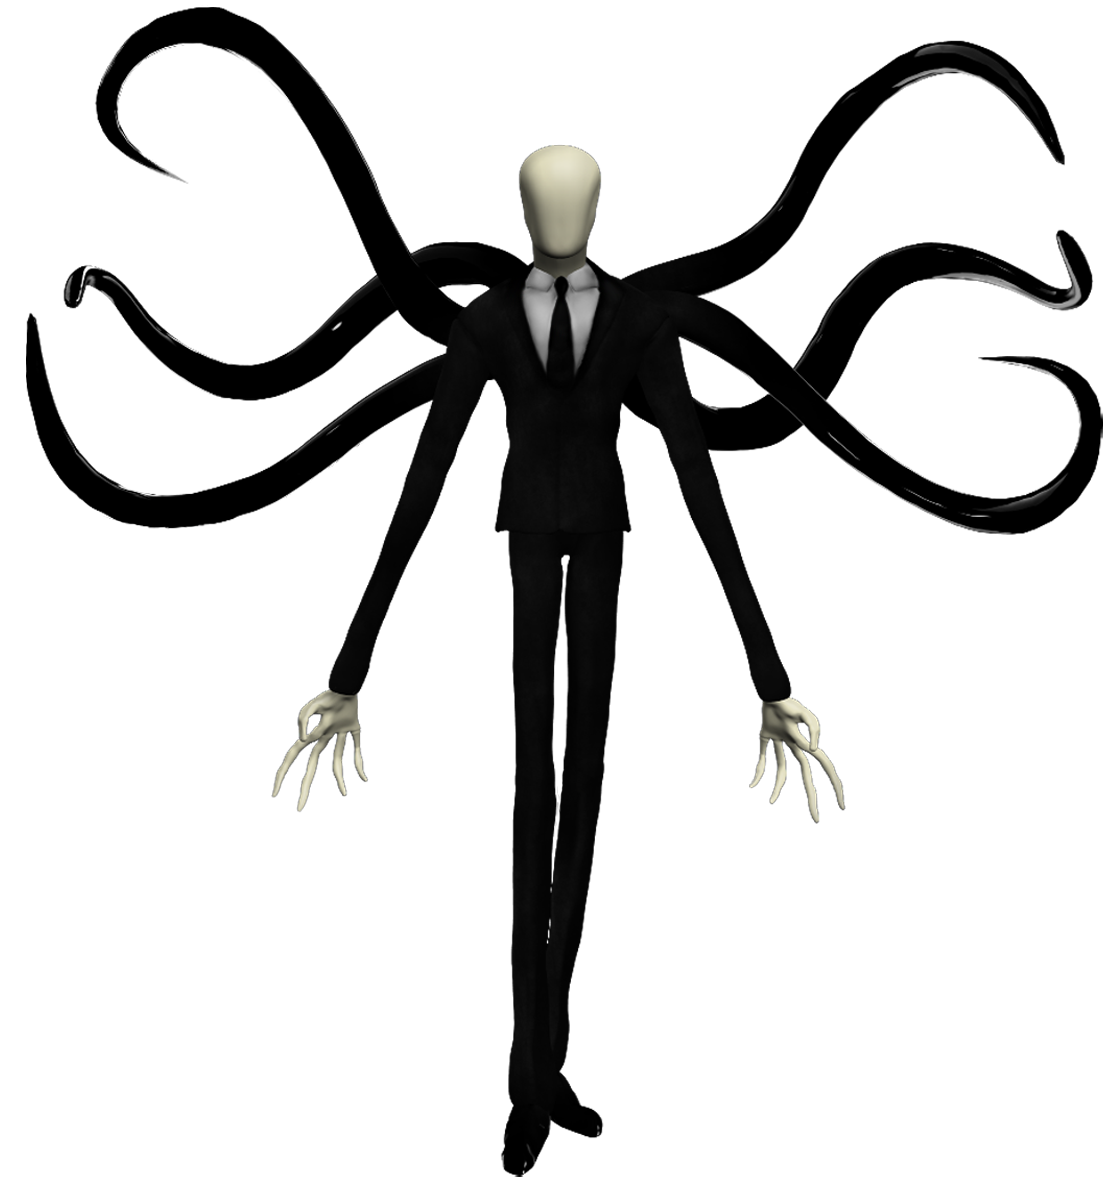 http://images4.wikia.nocookie.net/__cb20130319174835/playstationallstarsfanfictionroyale/images/0/05/Slender_Man.png